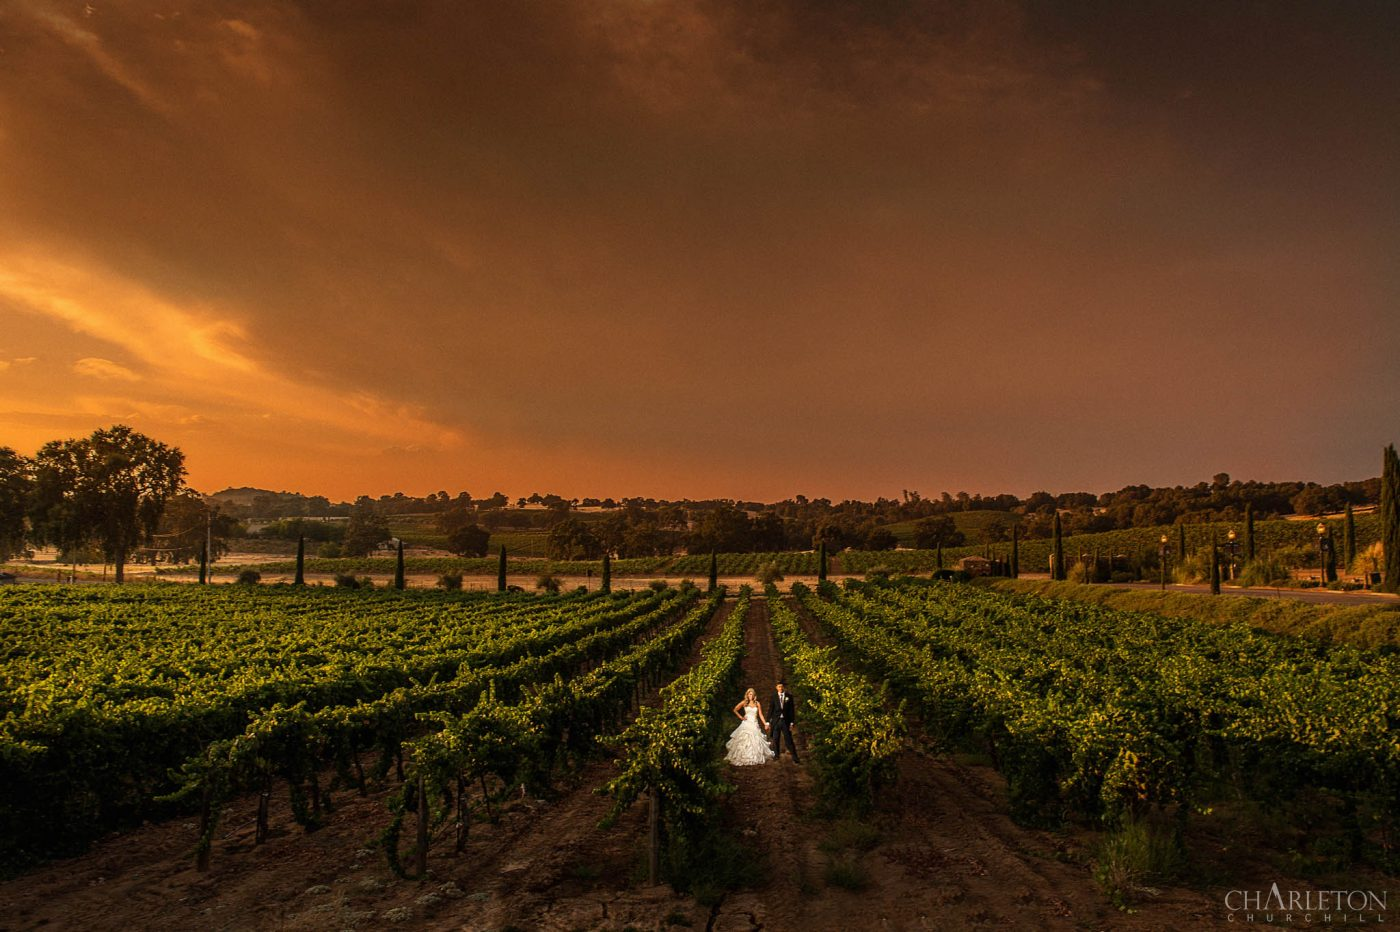 amador county wedding photographer charleton churchill at bella piazza winery with couple venue in the vineyard